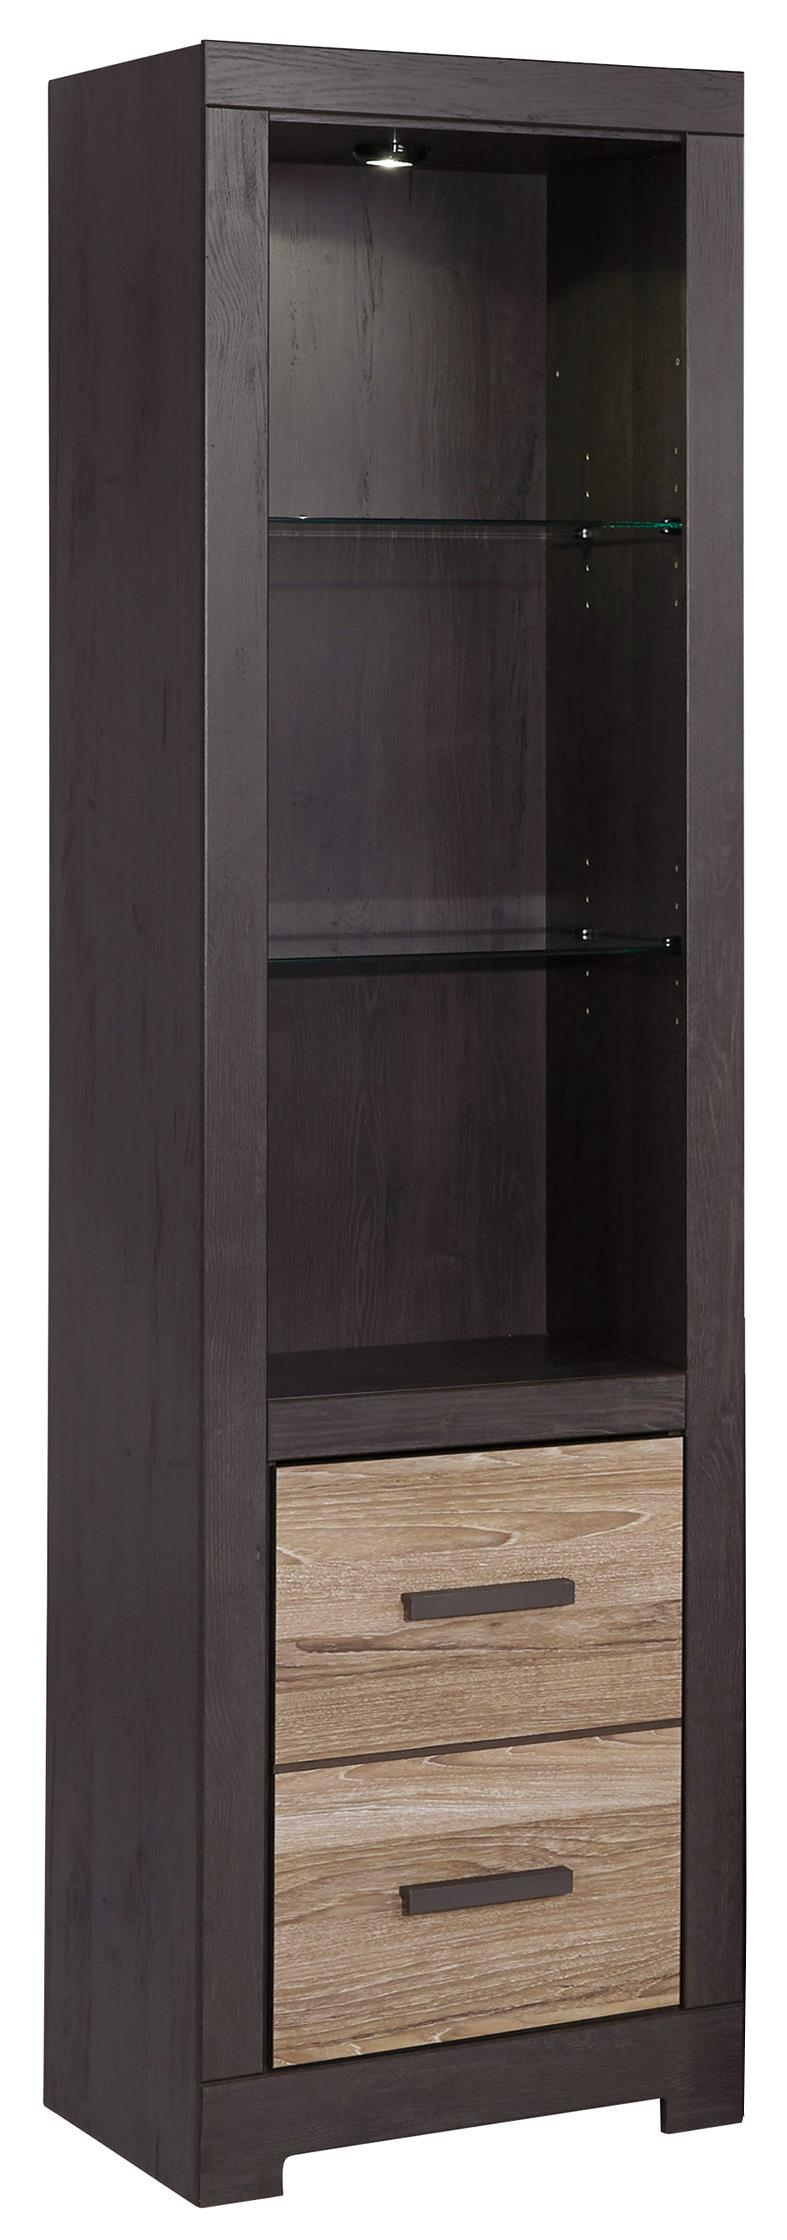 Harlinton Tall Pier by Signature Design by Ashley at HomeWorld Furniture